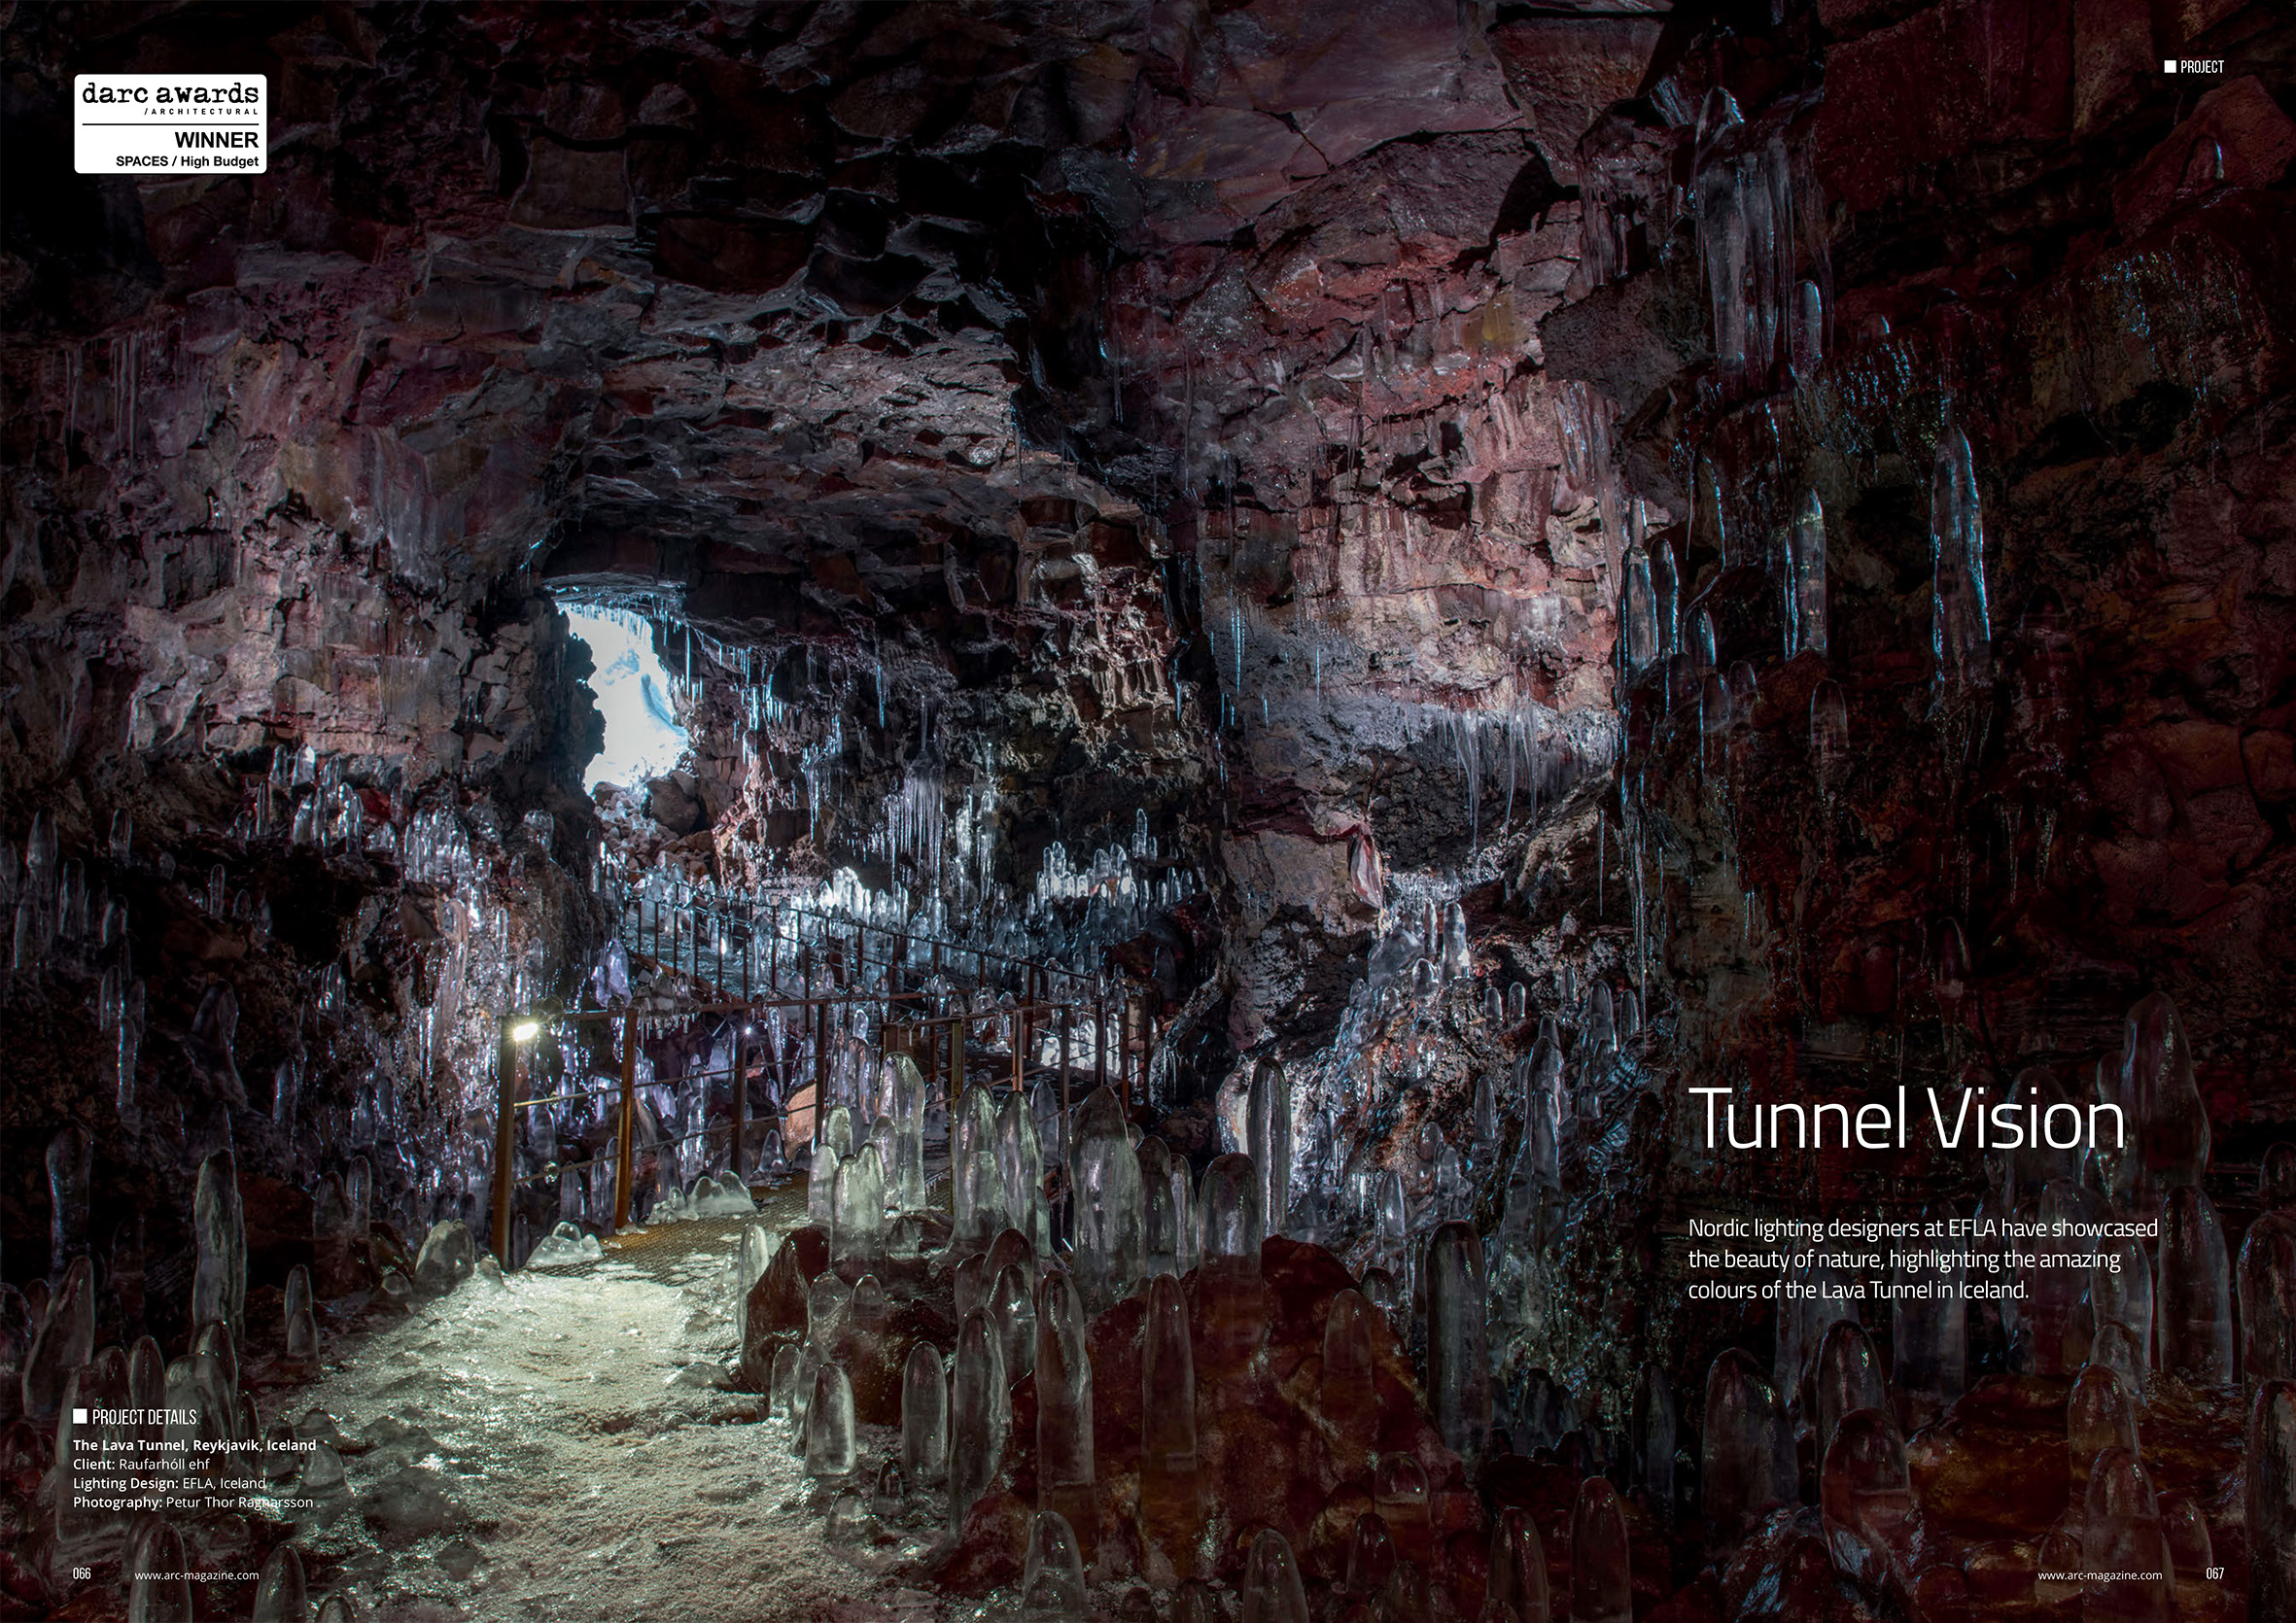 arc magazine_107_Lava Tunnel article_pp66-67w.jpg